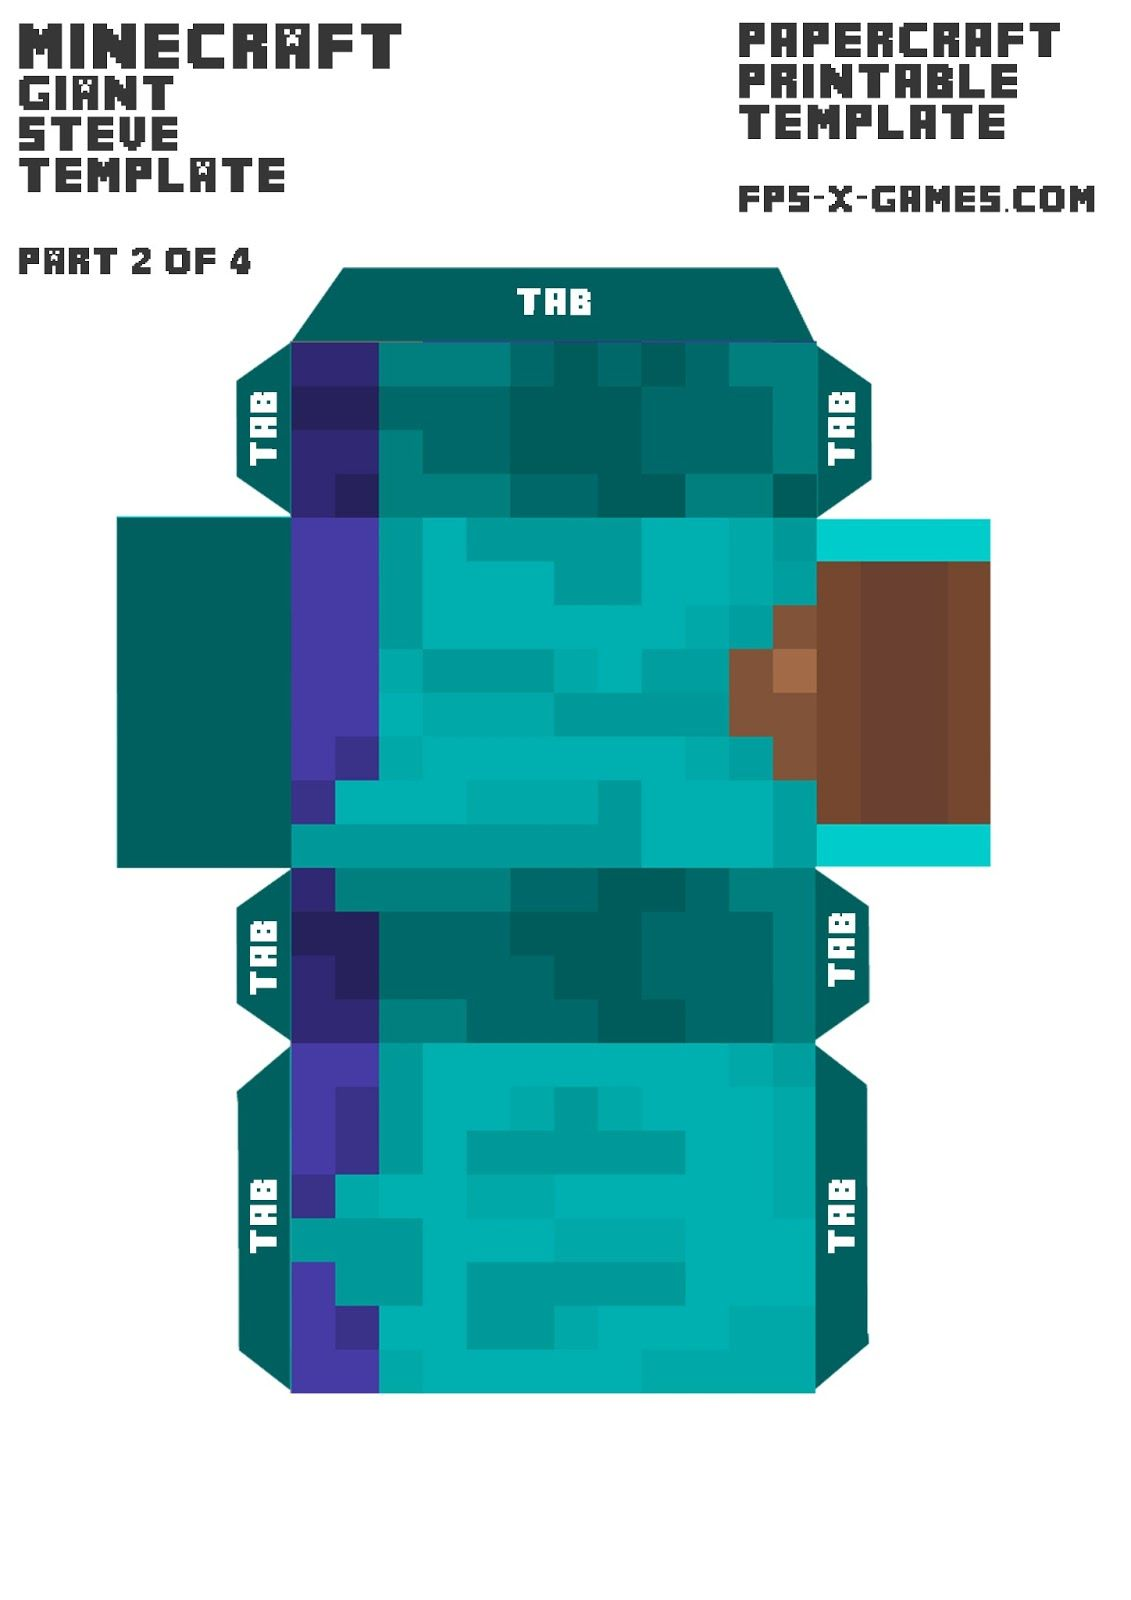 graphic regarding Minecraft Steve Printable known as Minecraft big Steve human body template 2-4 paper design and style Children